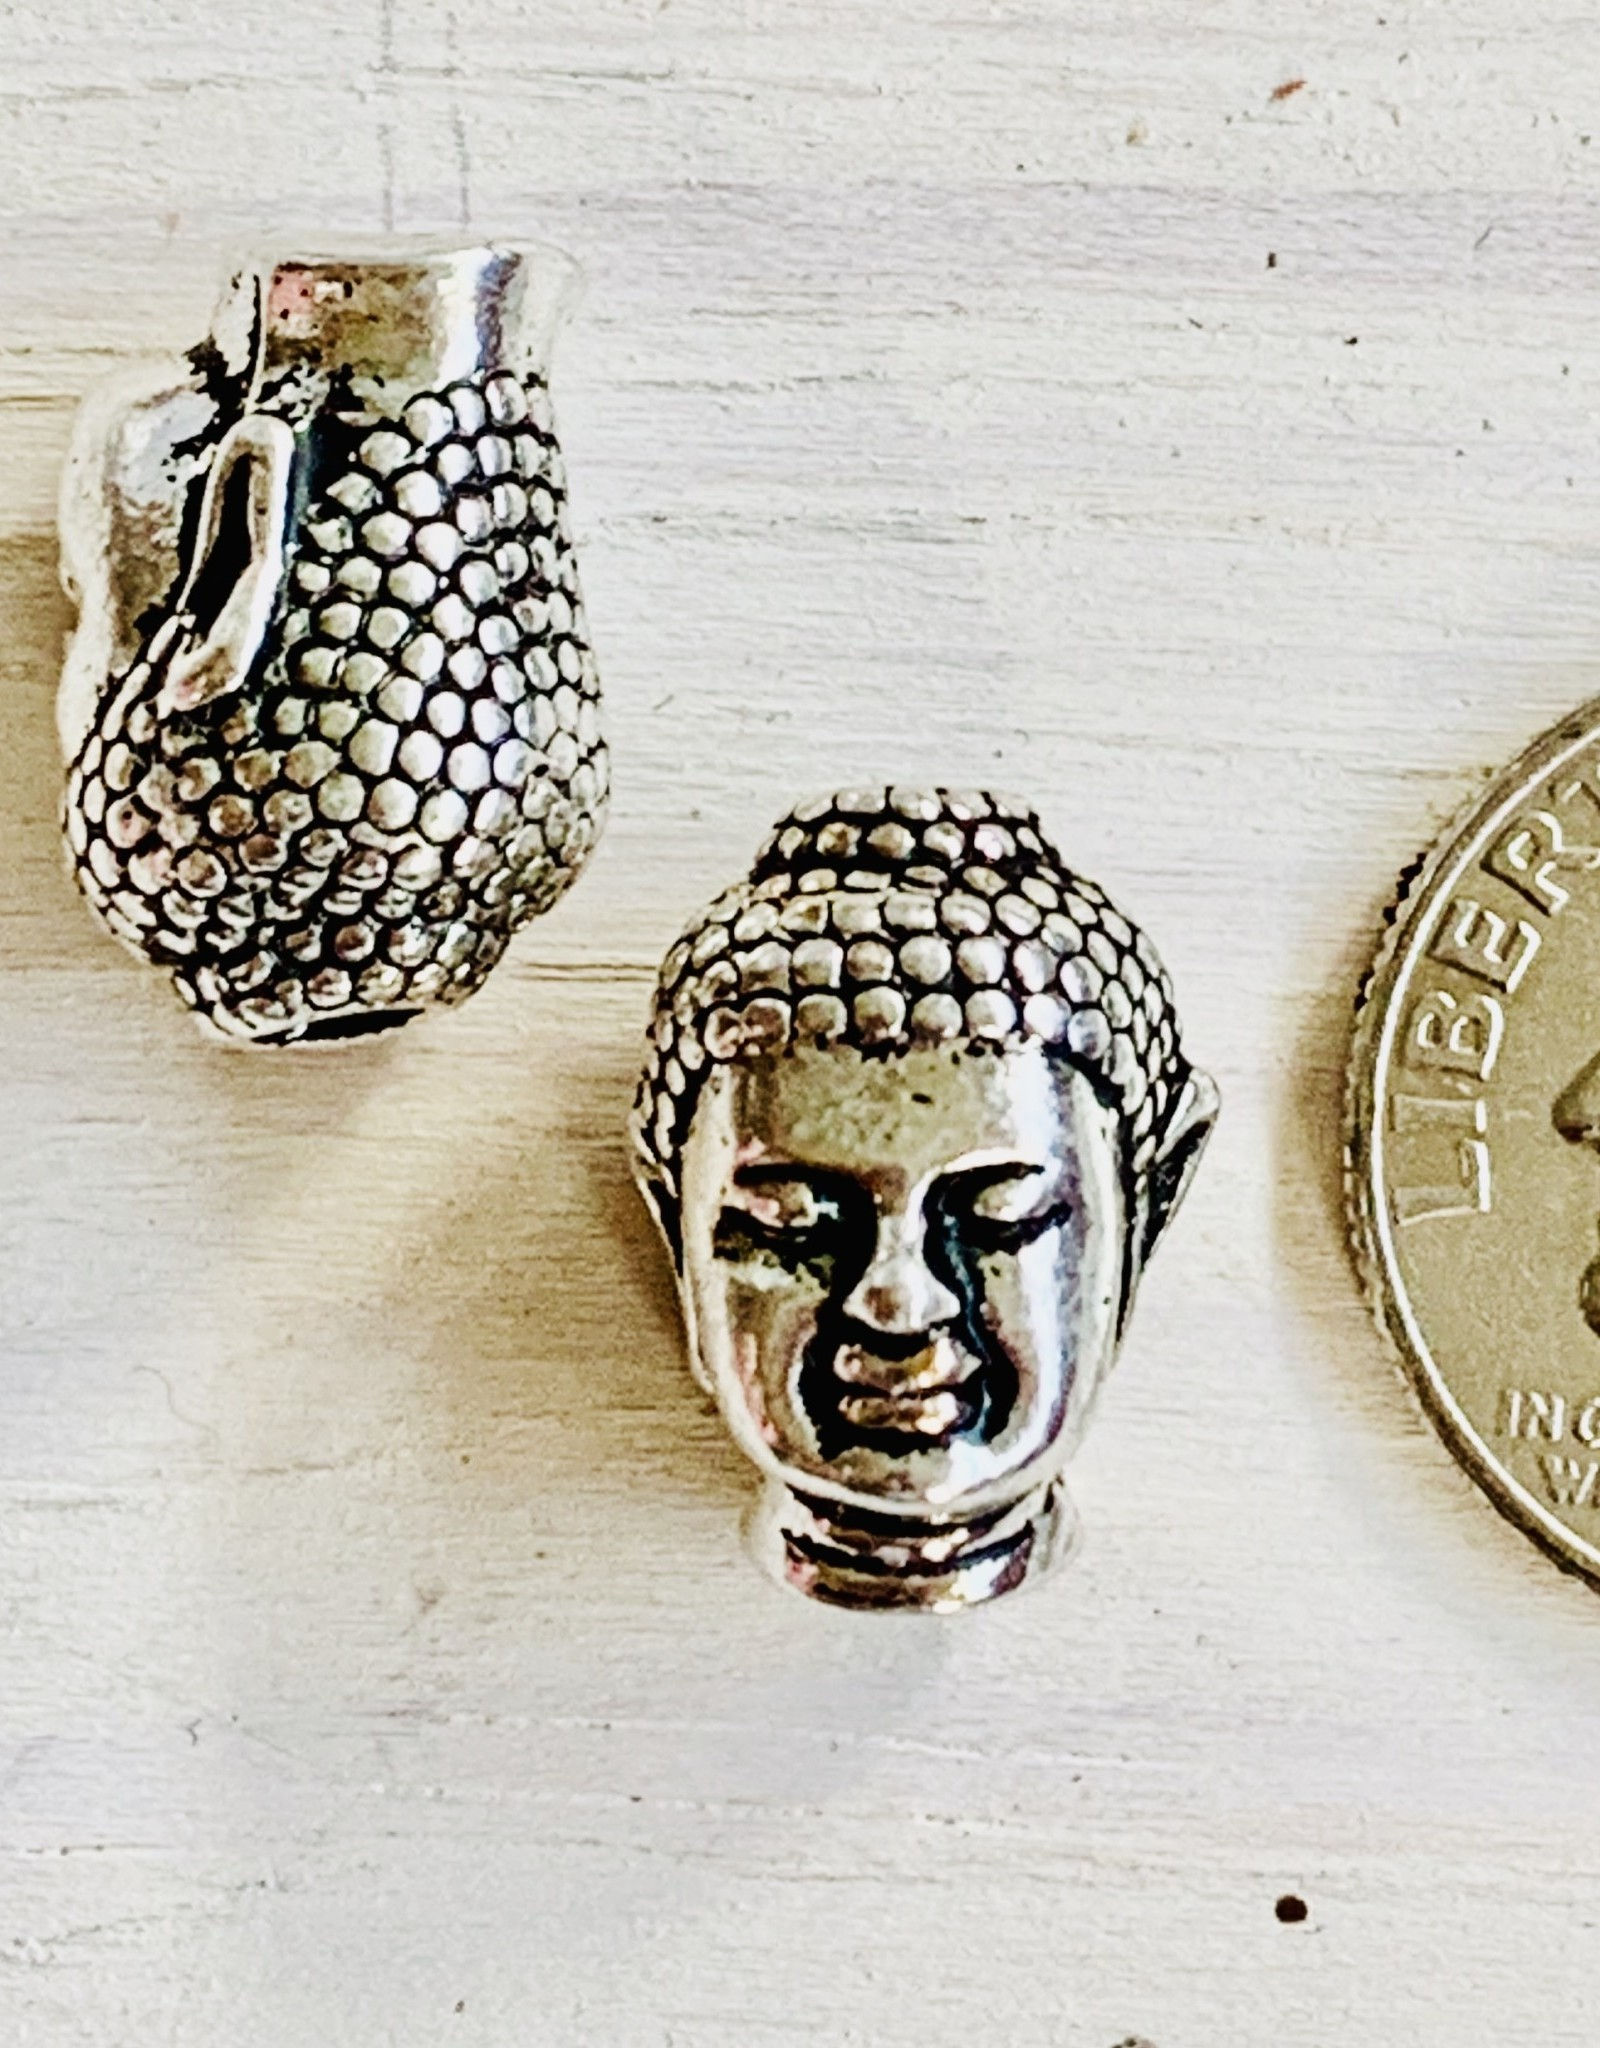 Tierra Cast Buddha Head SP ea